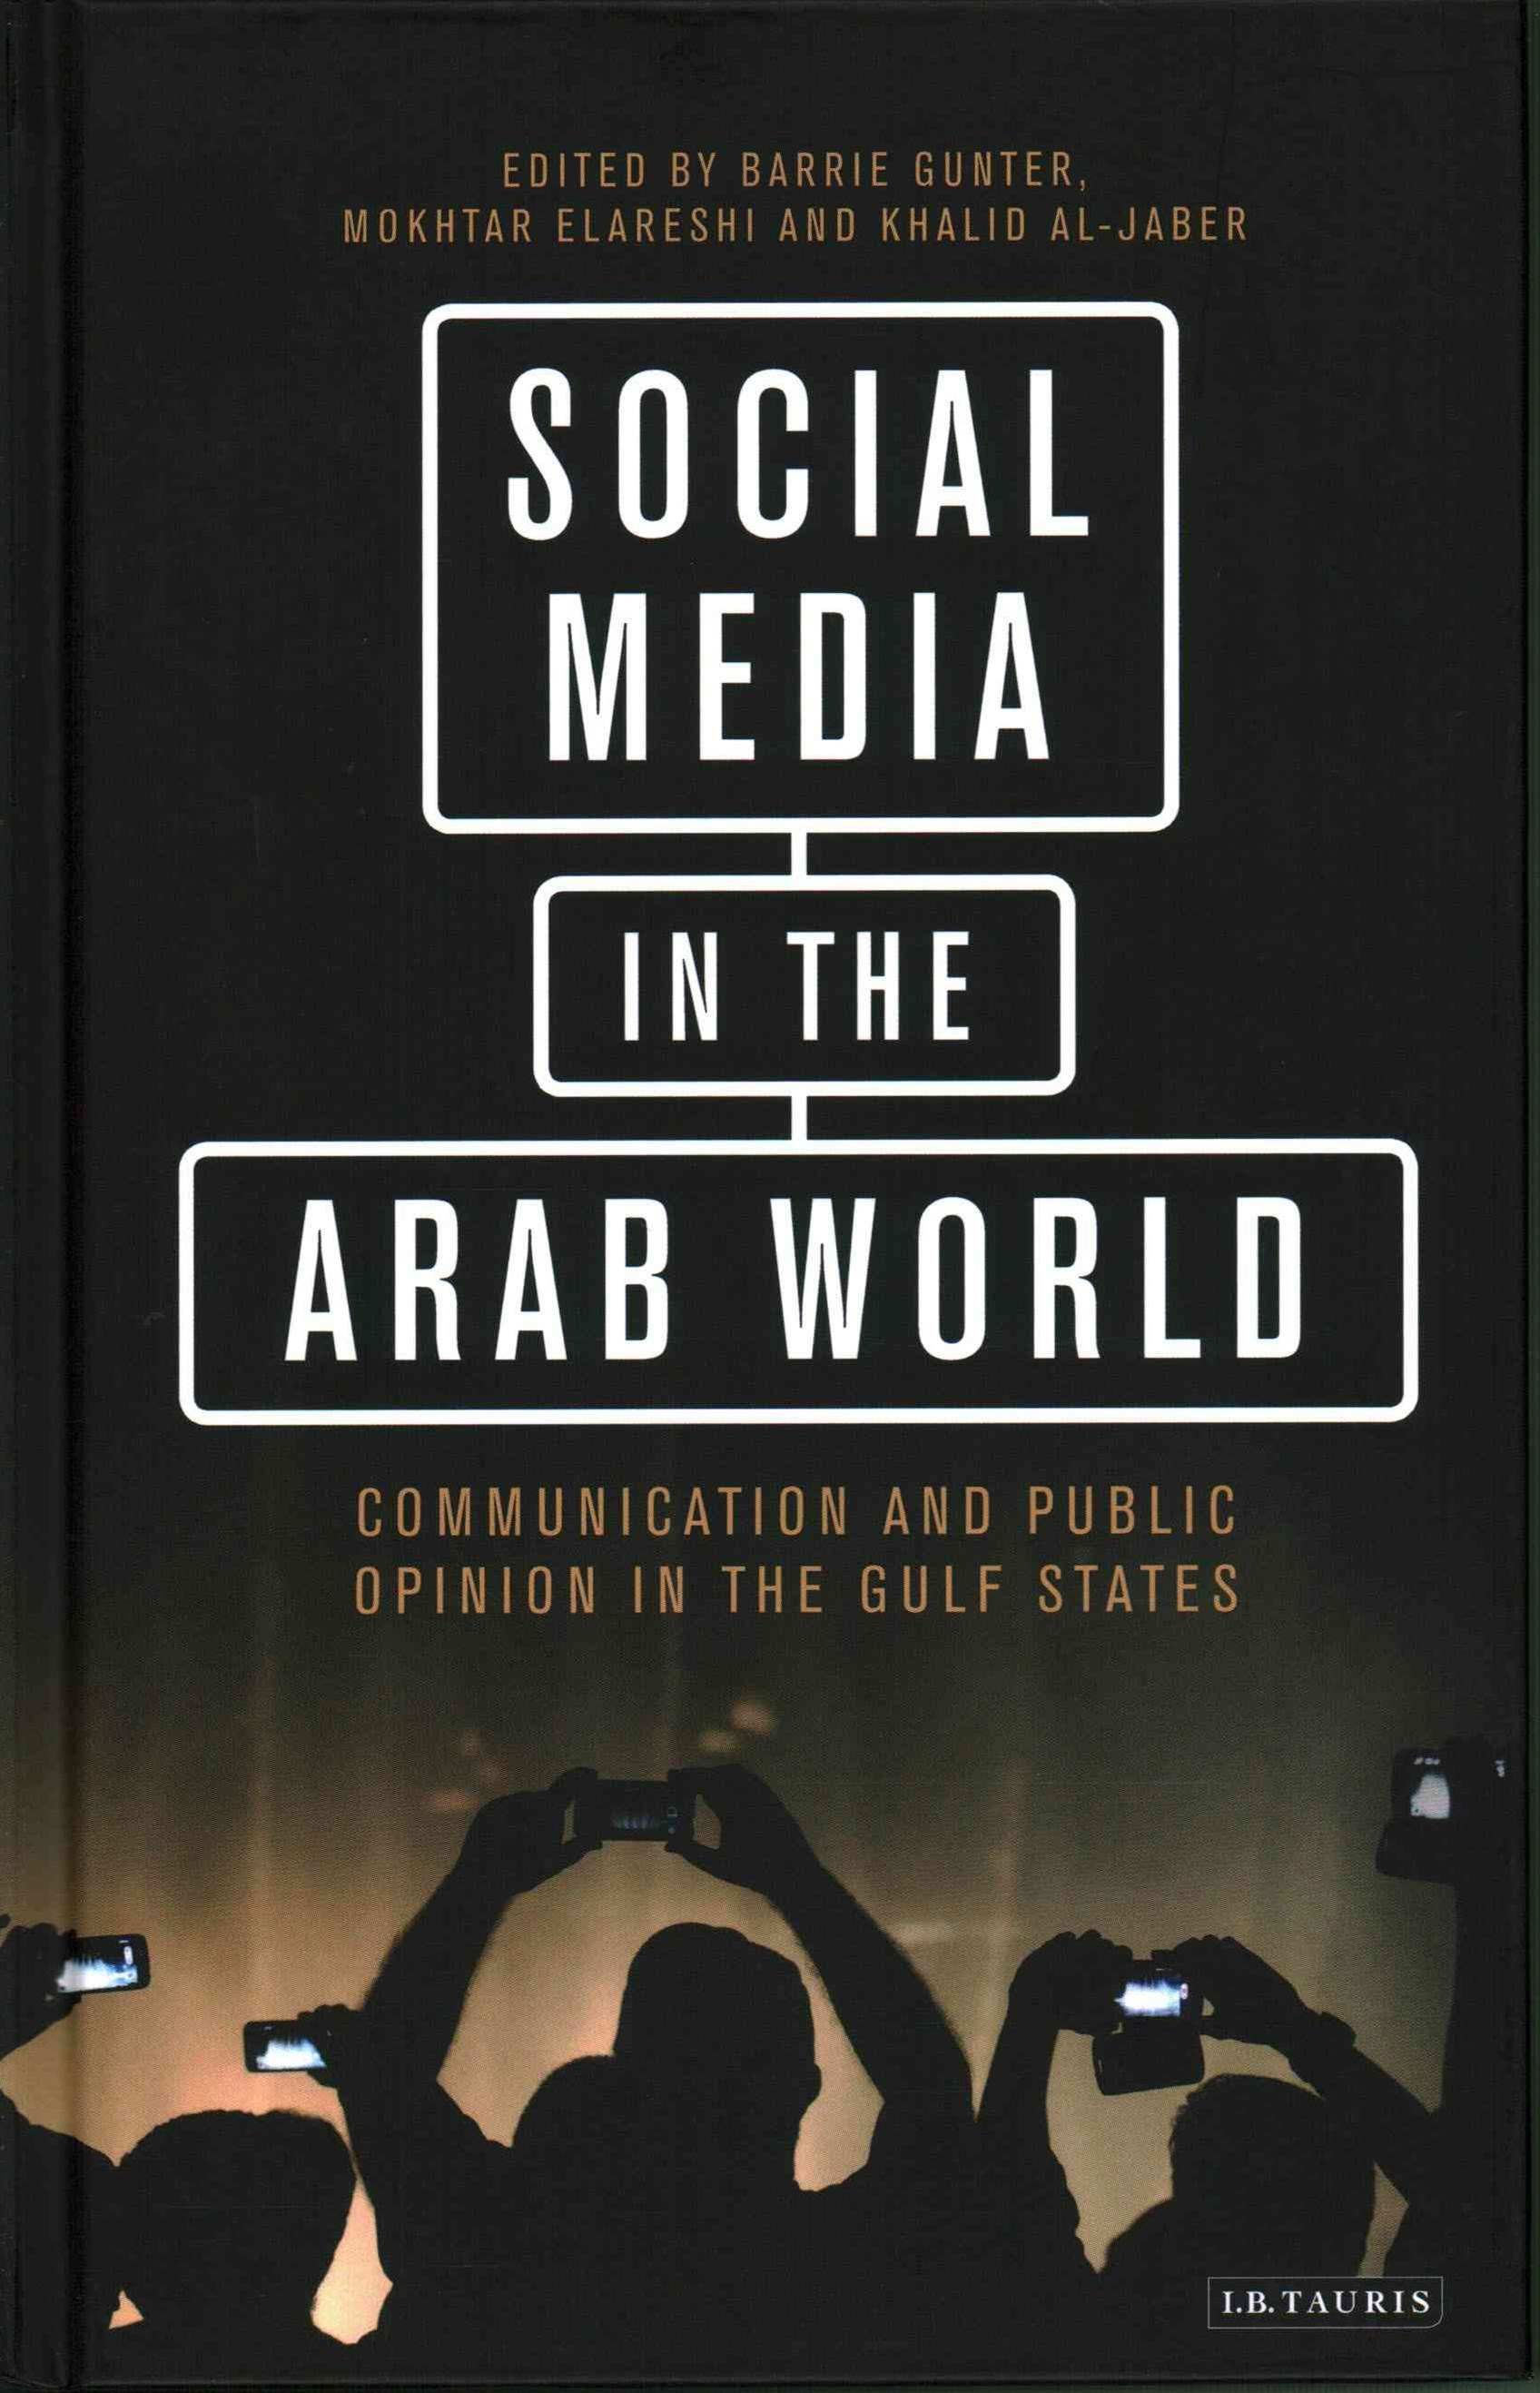 Social Media in the Arab World